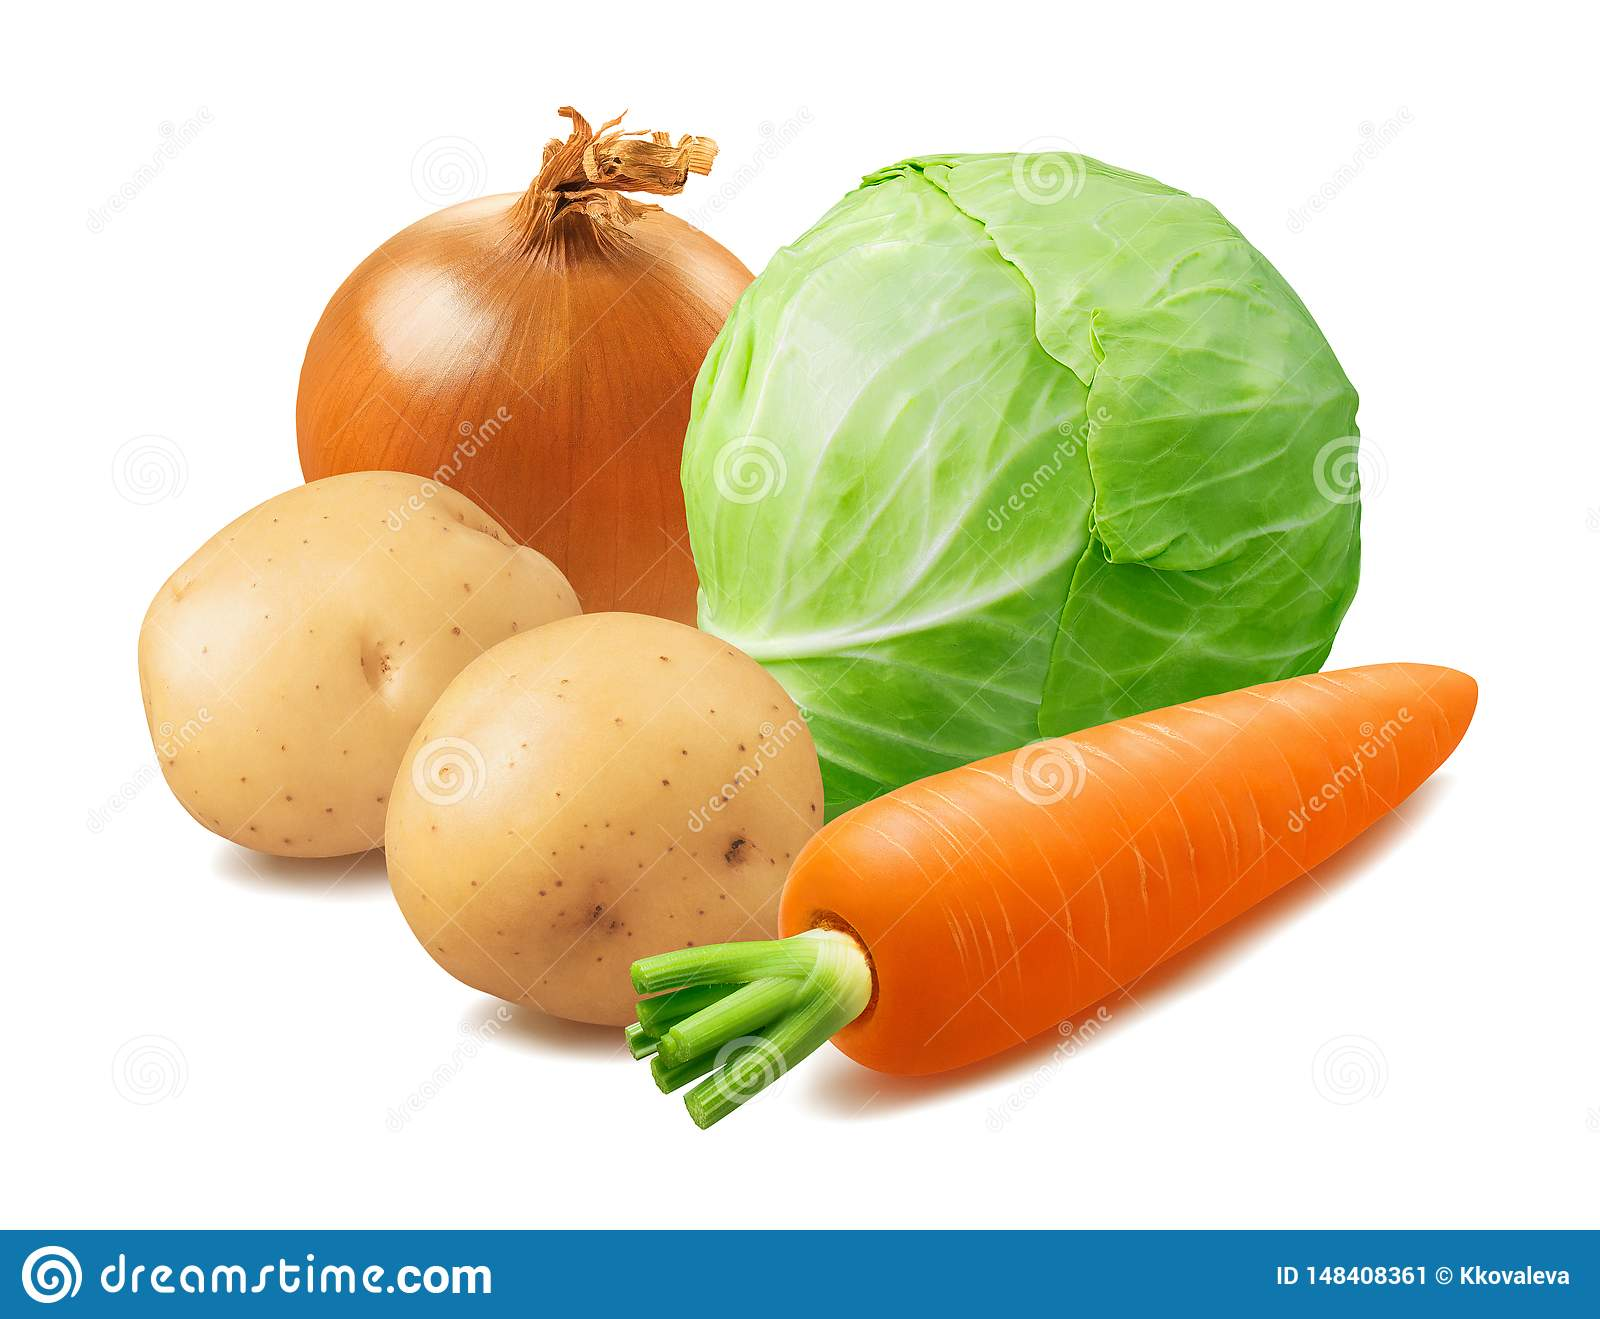 Cabbage, Potato, Carrot and Onion Isolated on White Background ...